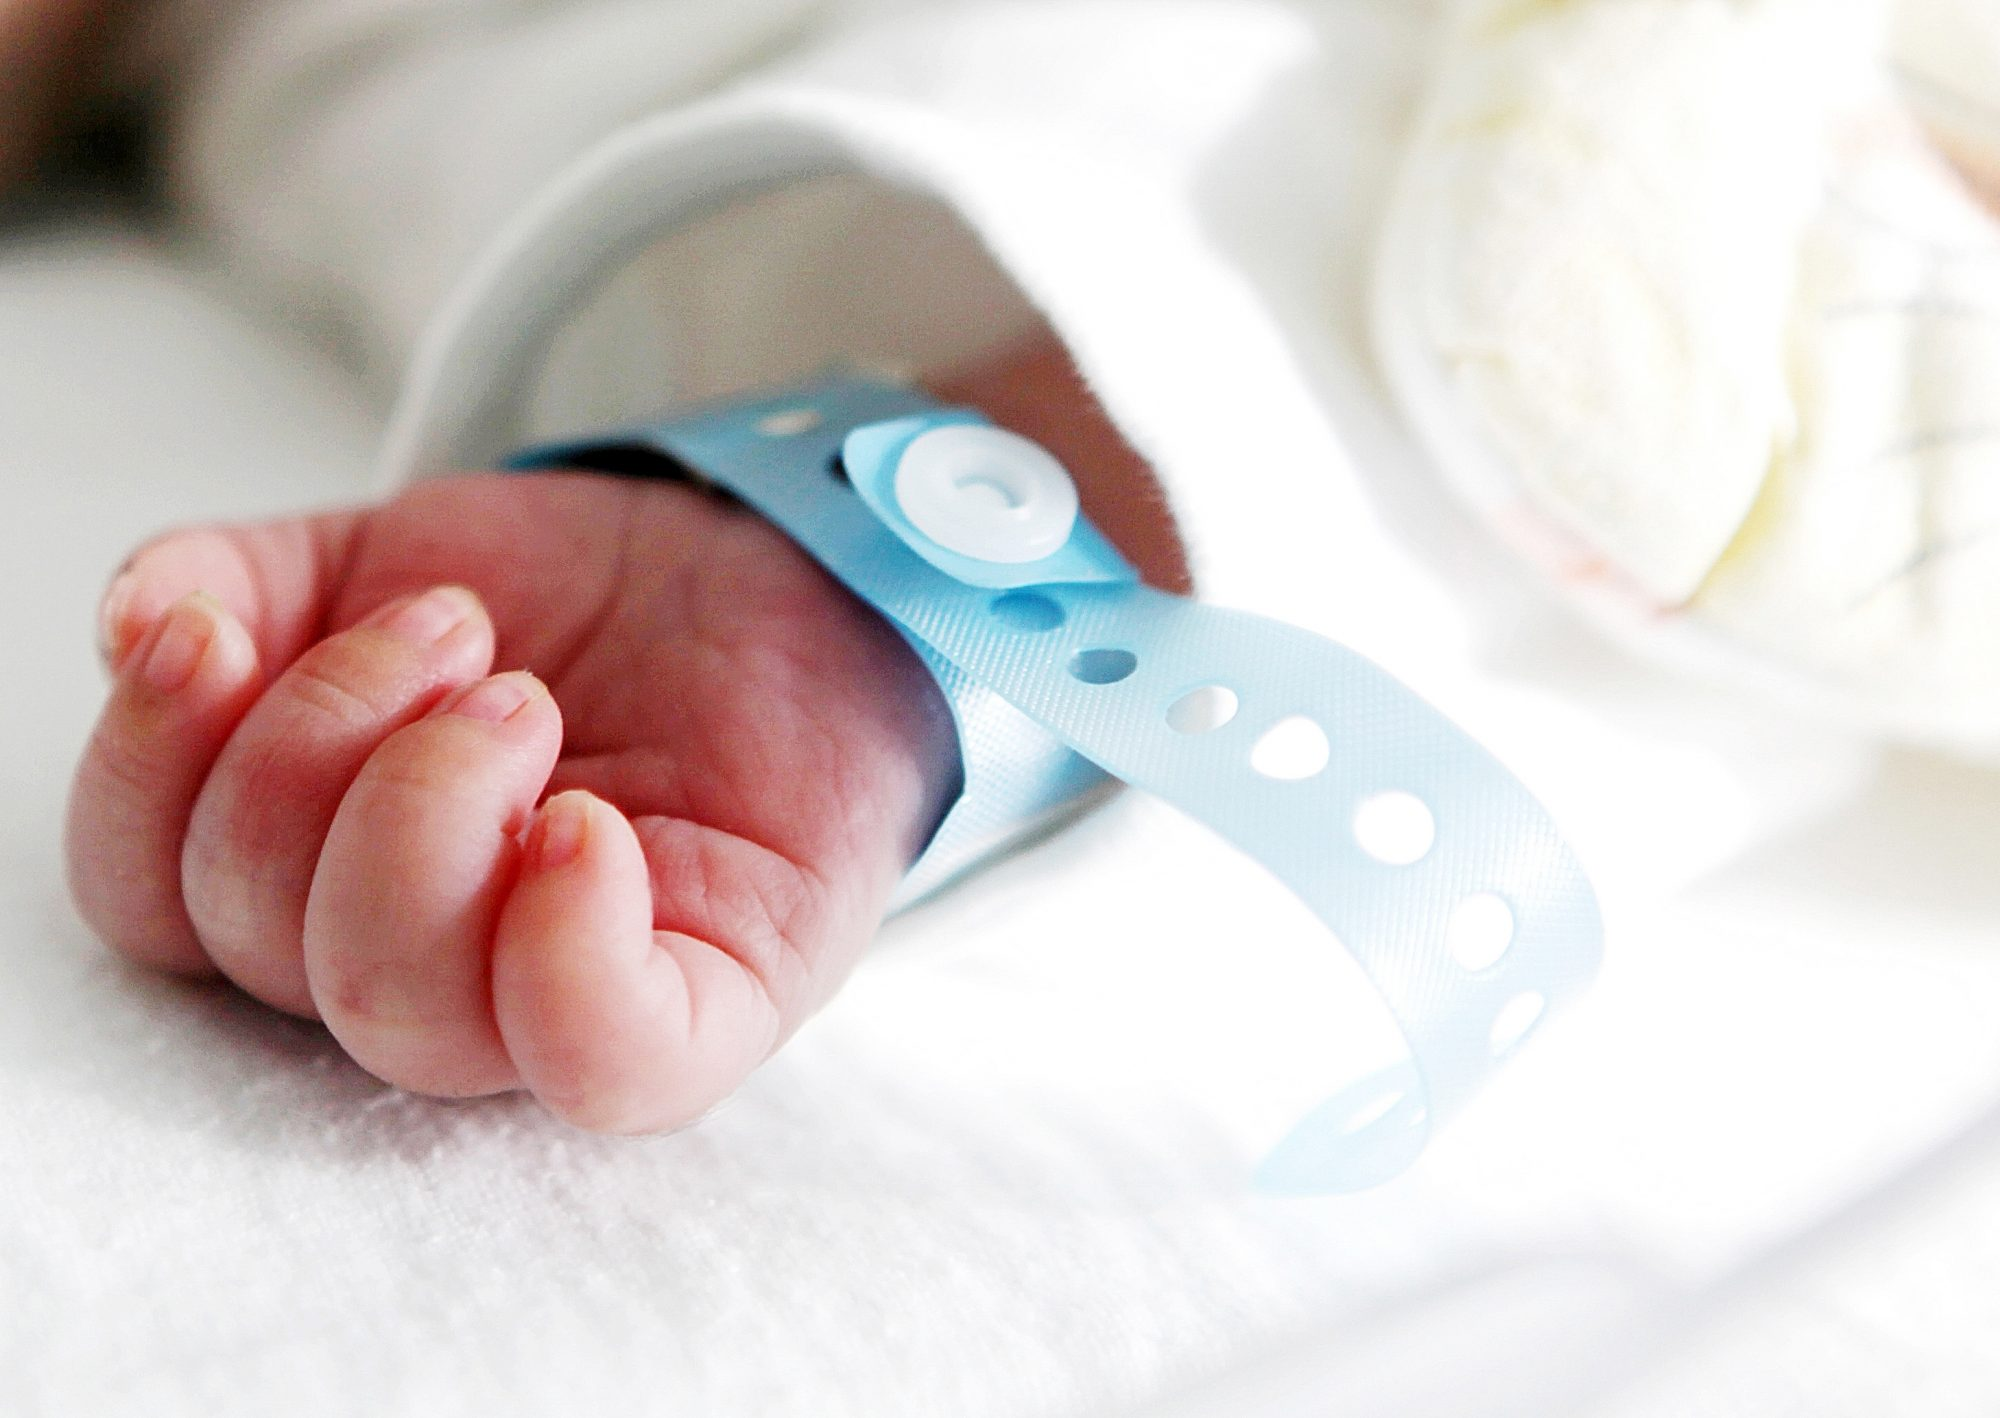 Infant baby wearing a hospital band